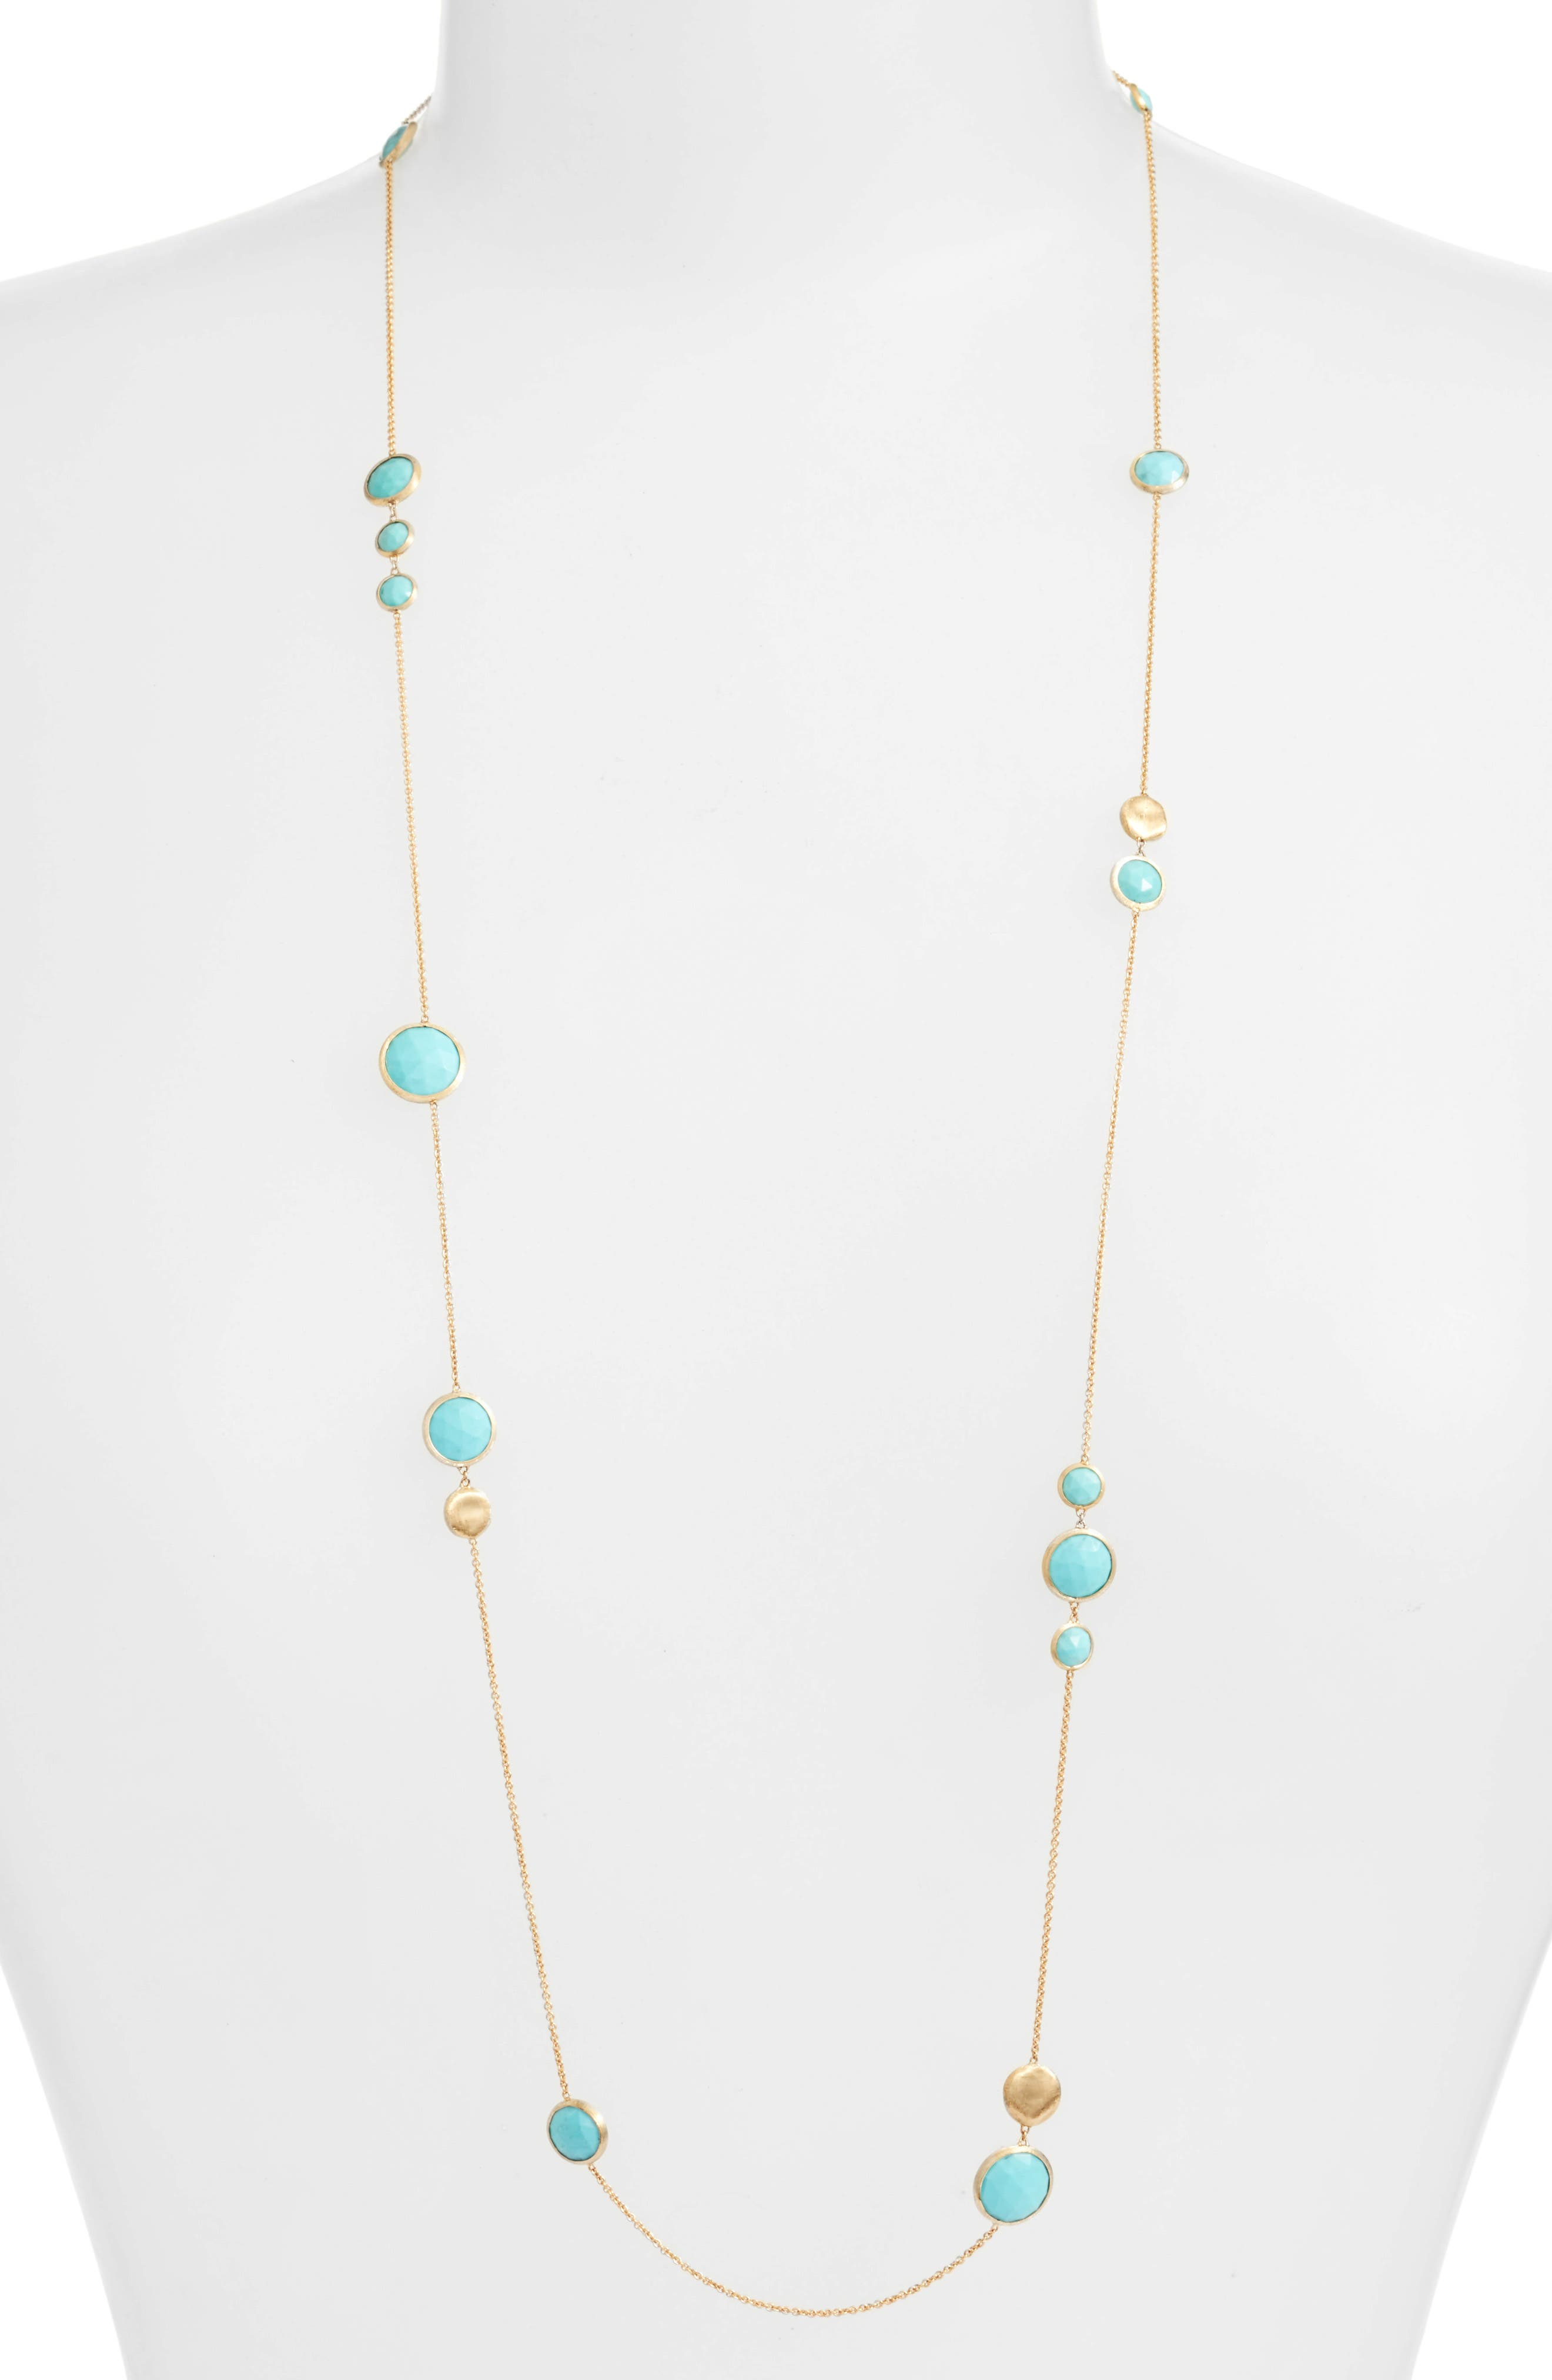 MARCO BICEGO 'Jaipur' Long Station Necklace